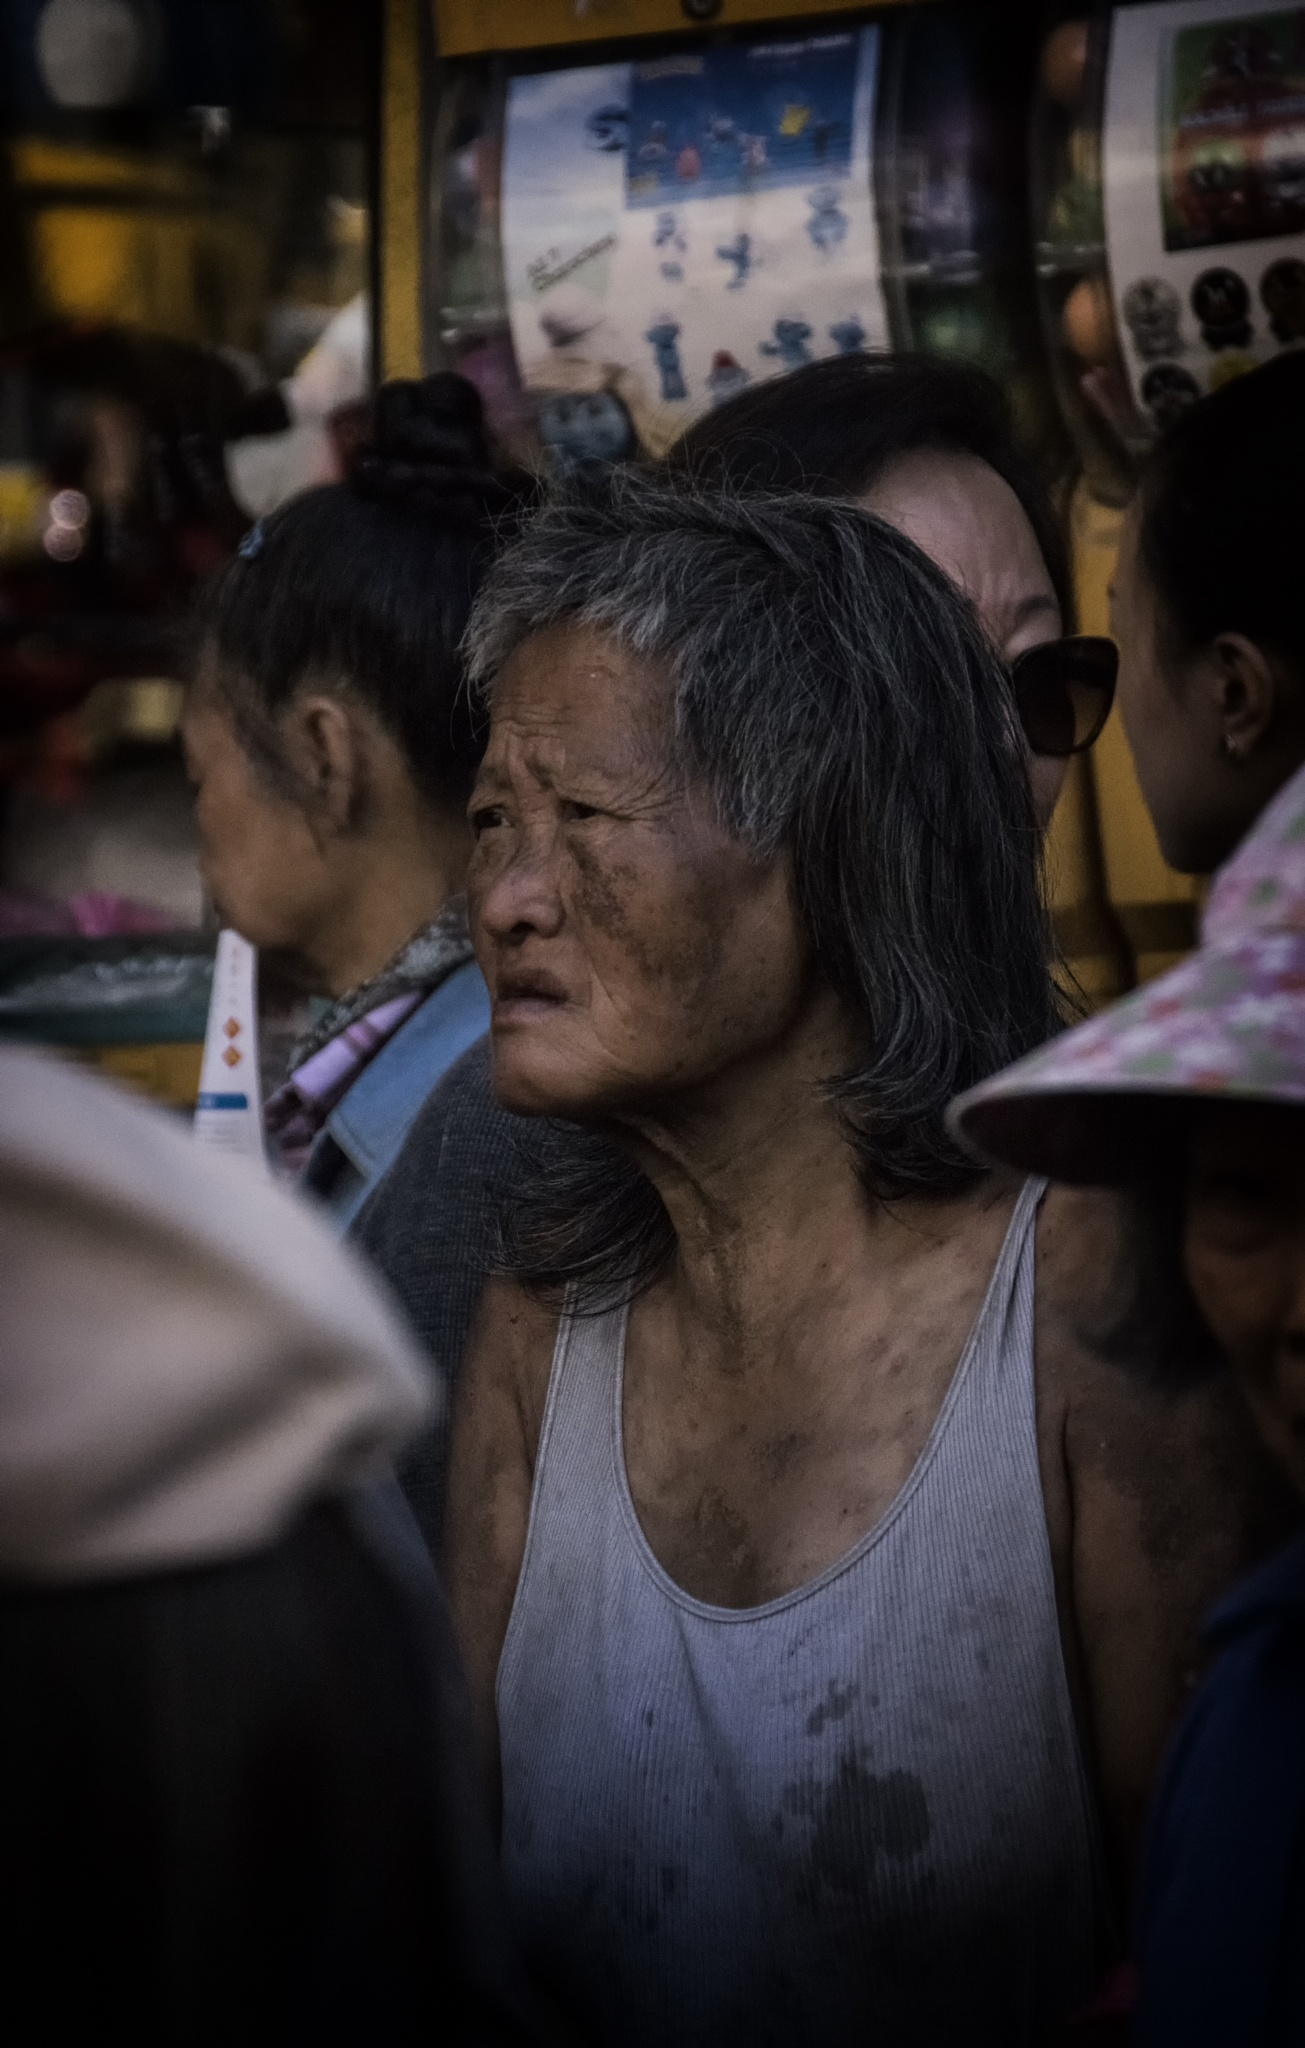 Woman in the crowd in Chinatown by patric.carver